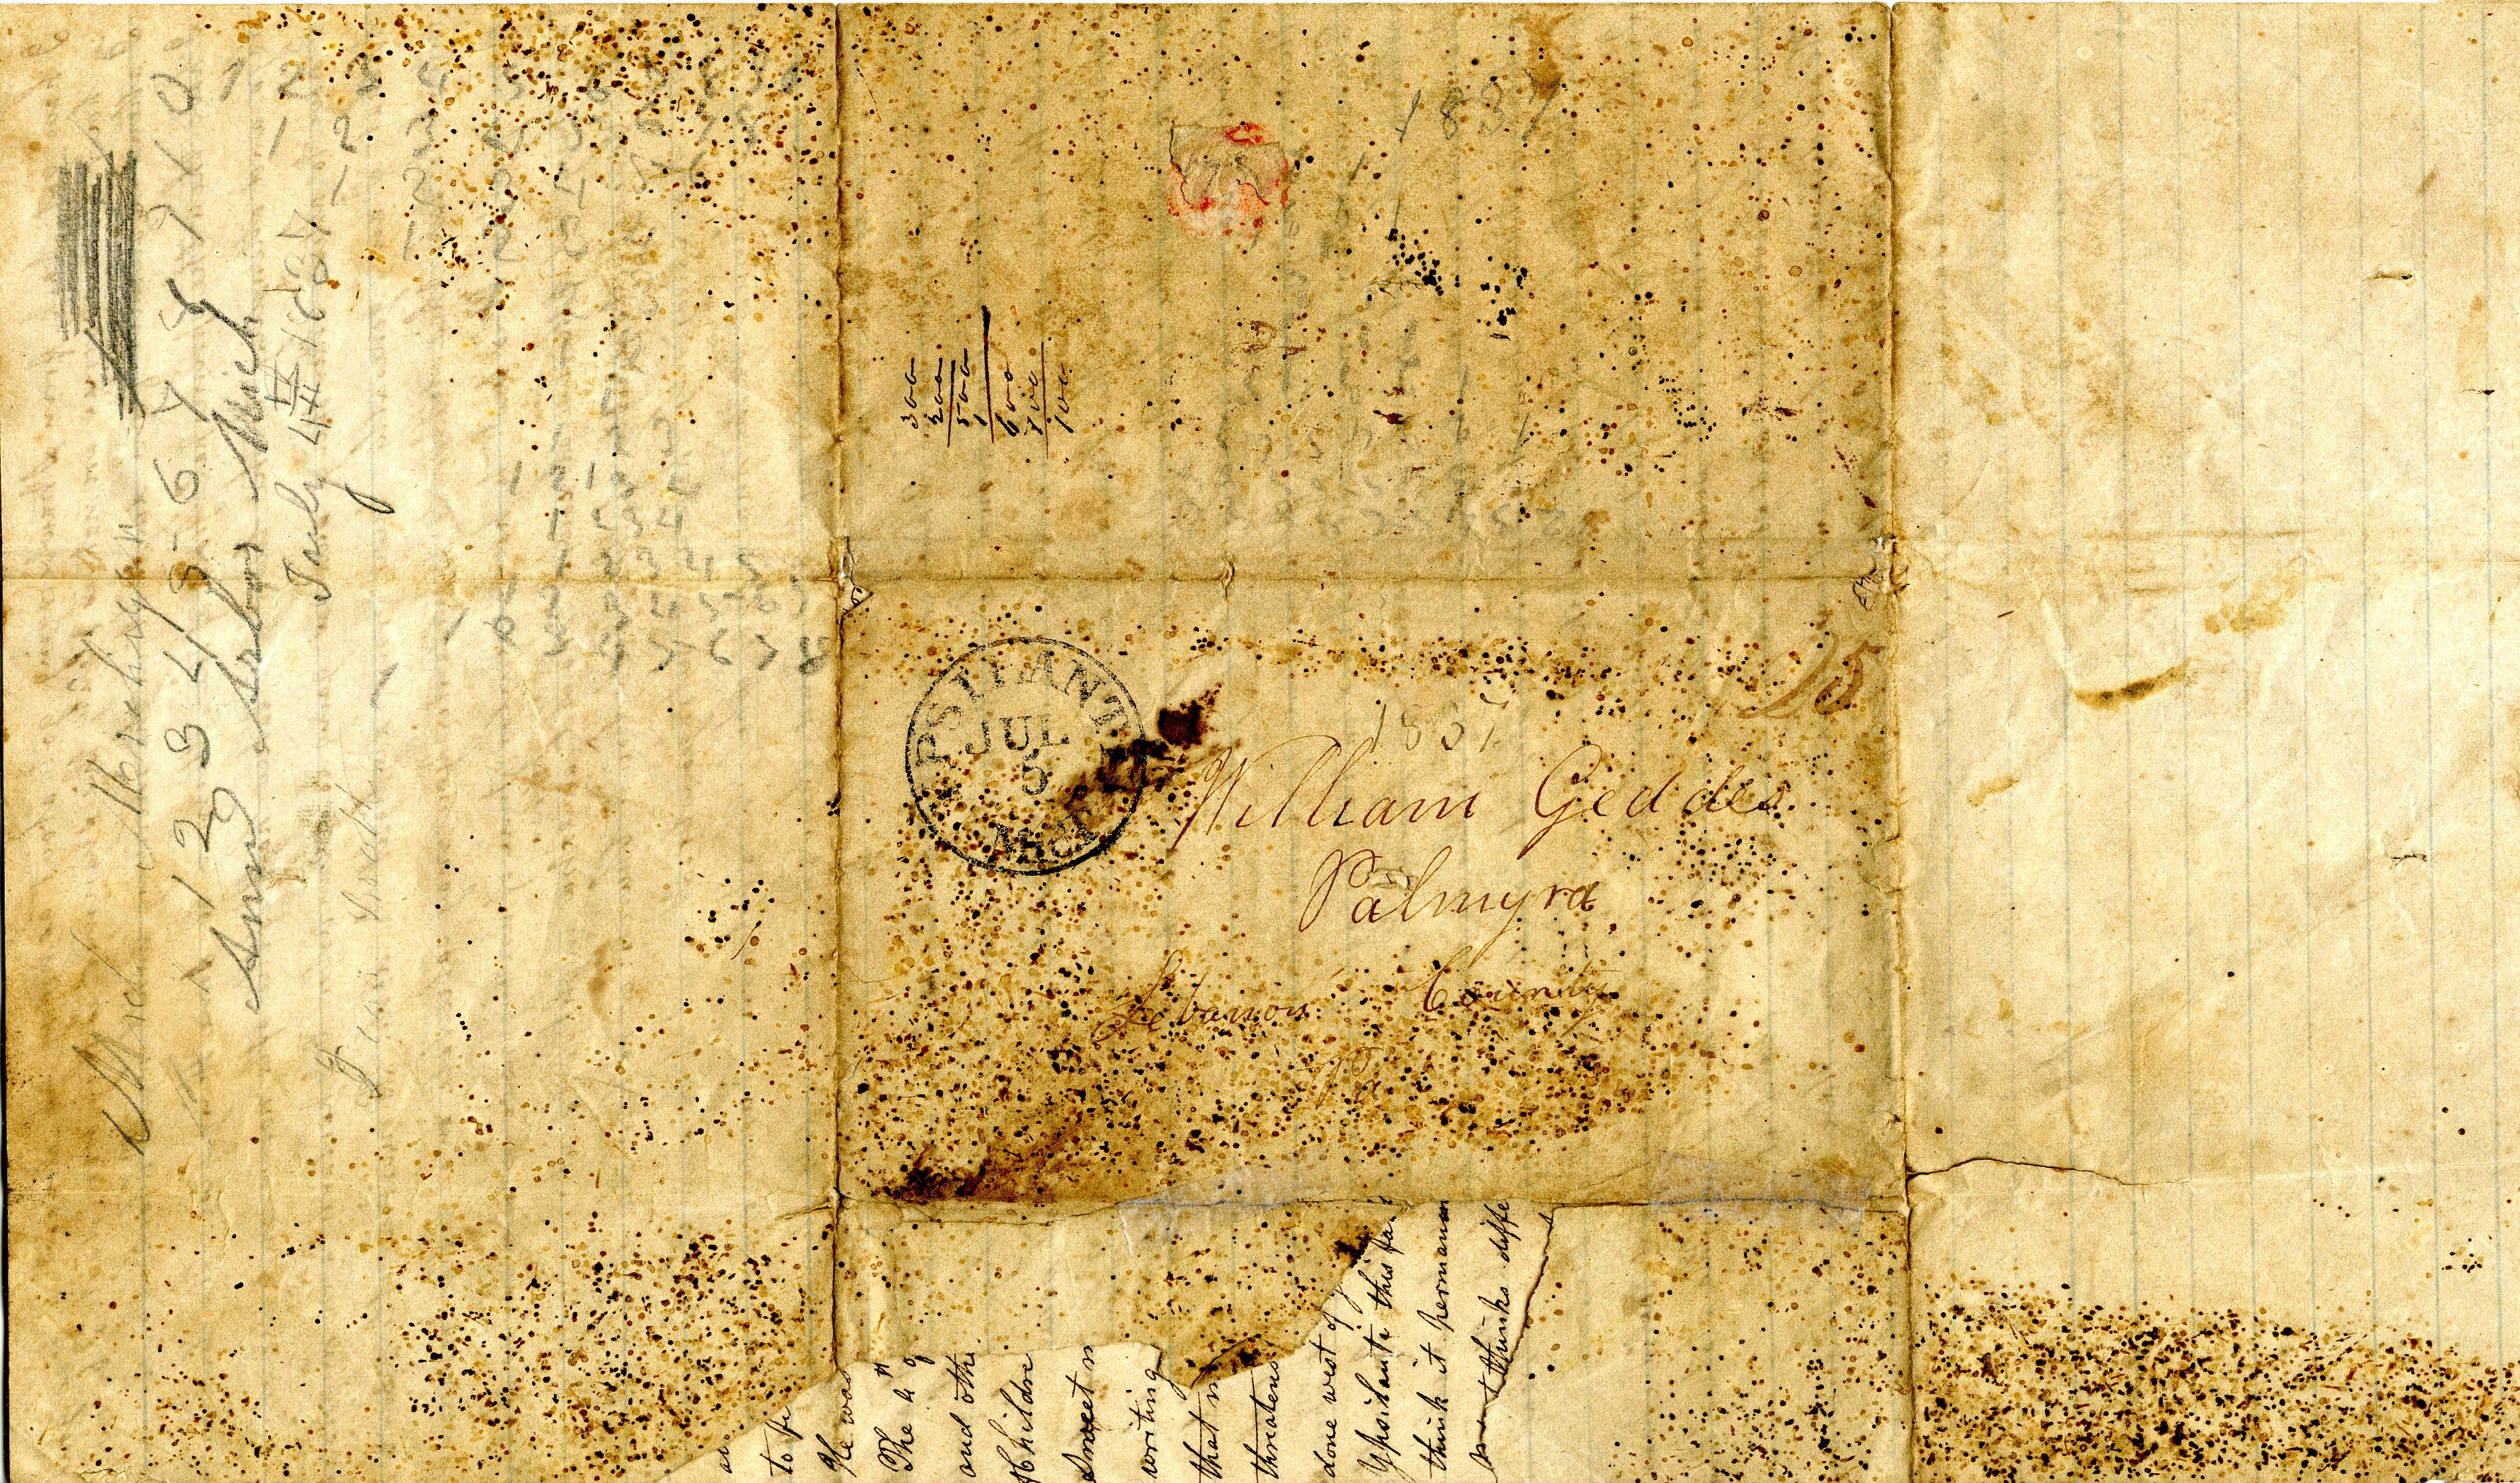 Letter From John Geddes to William Geddes, July 4, 1837 image